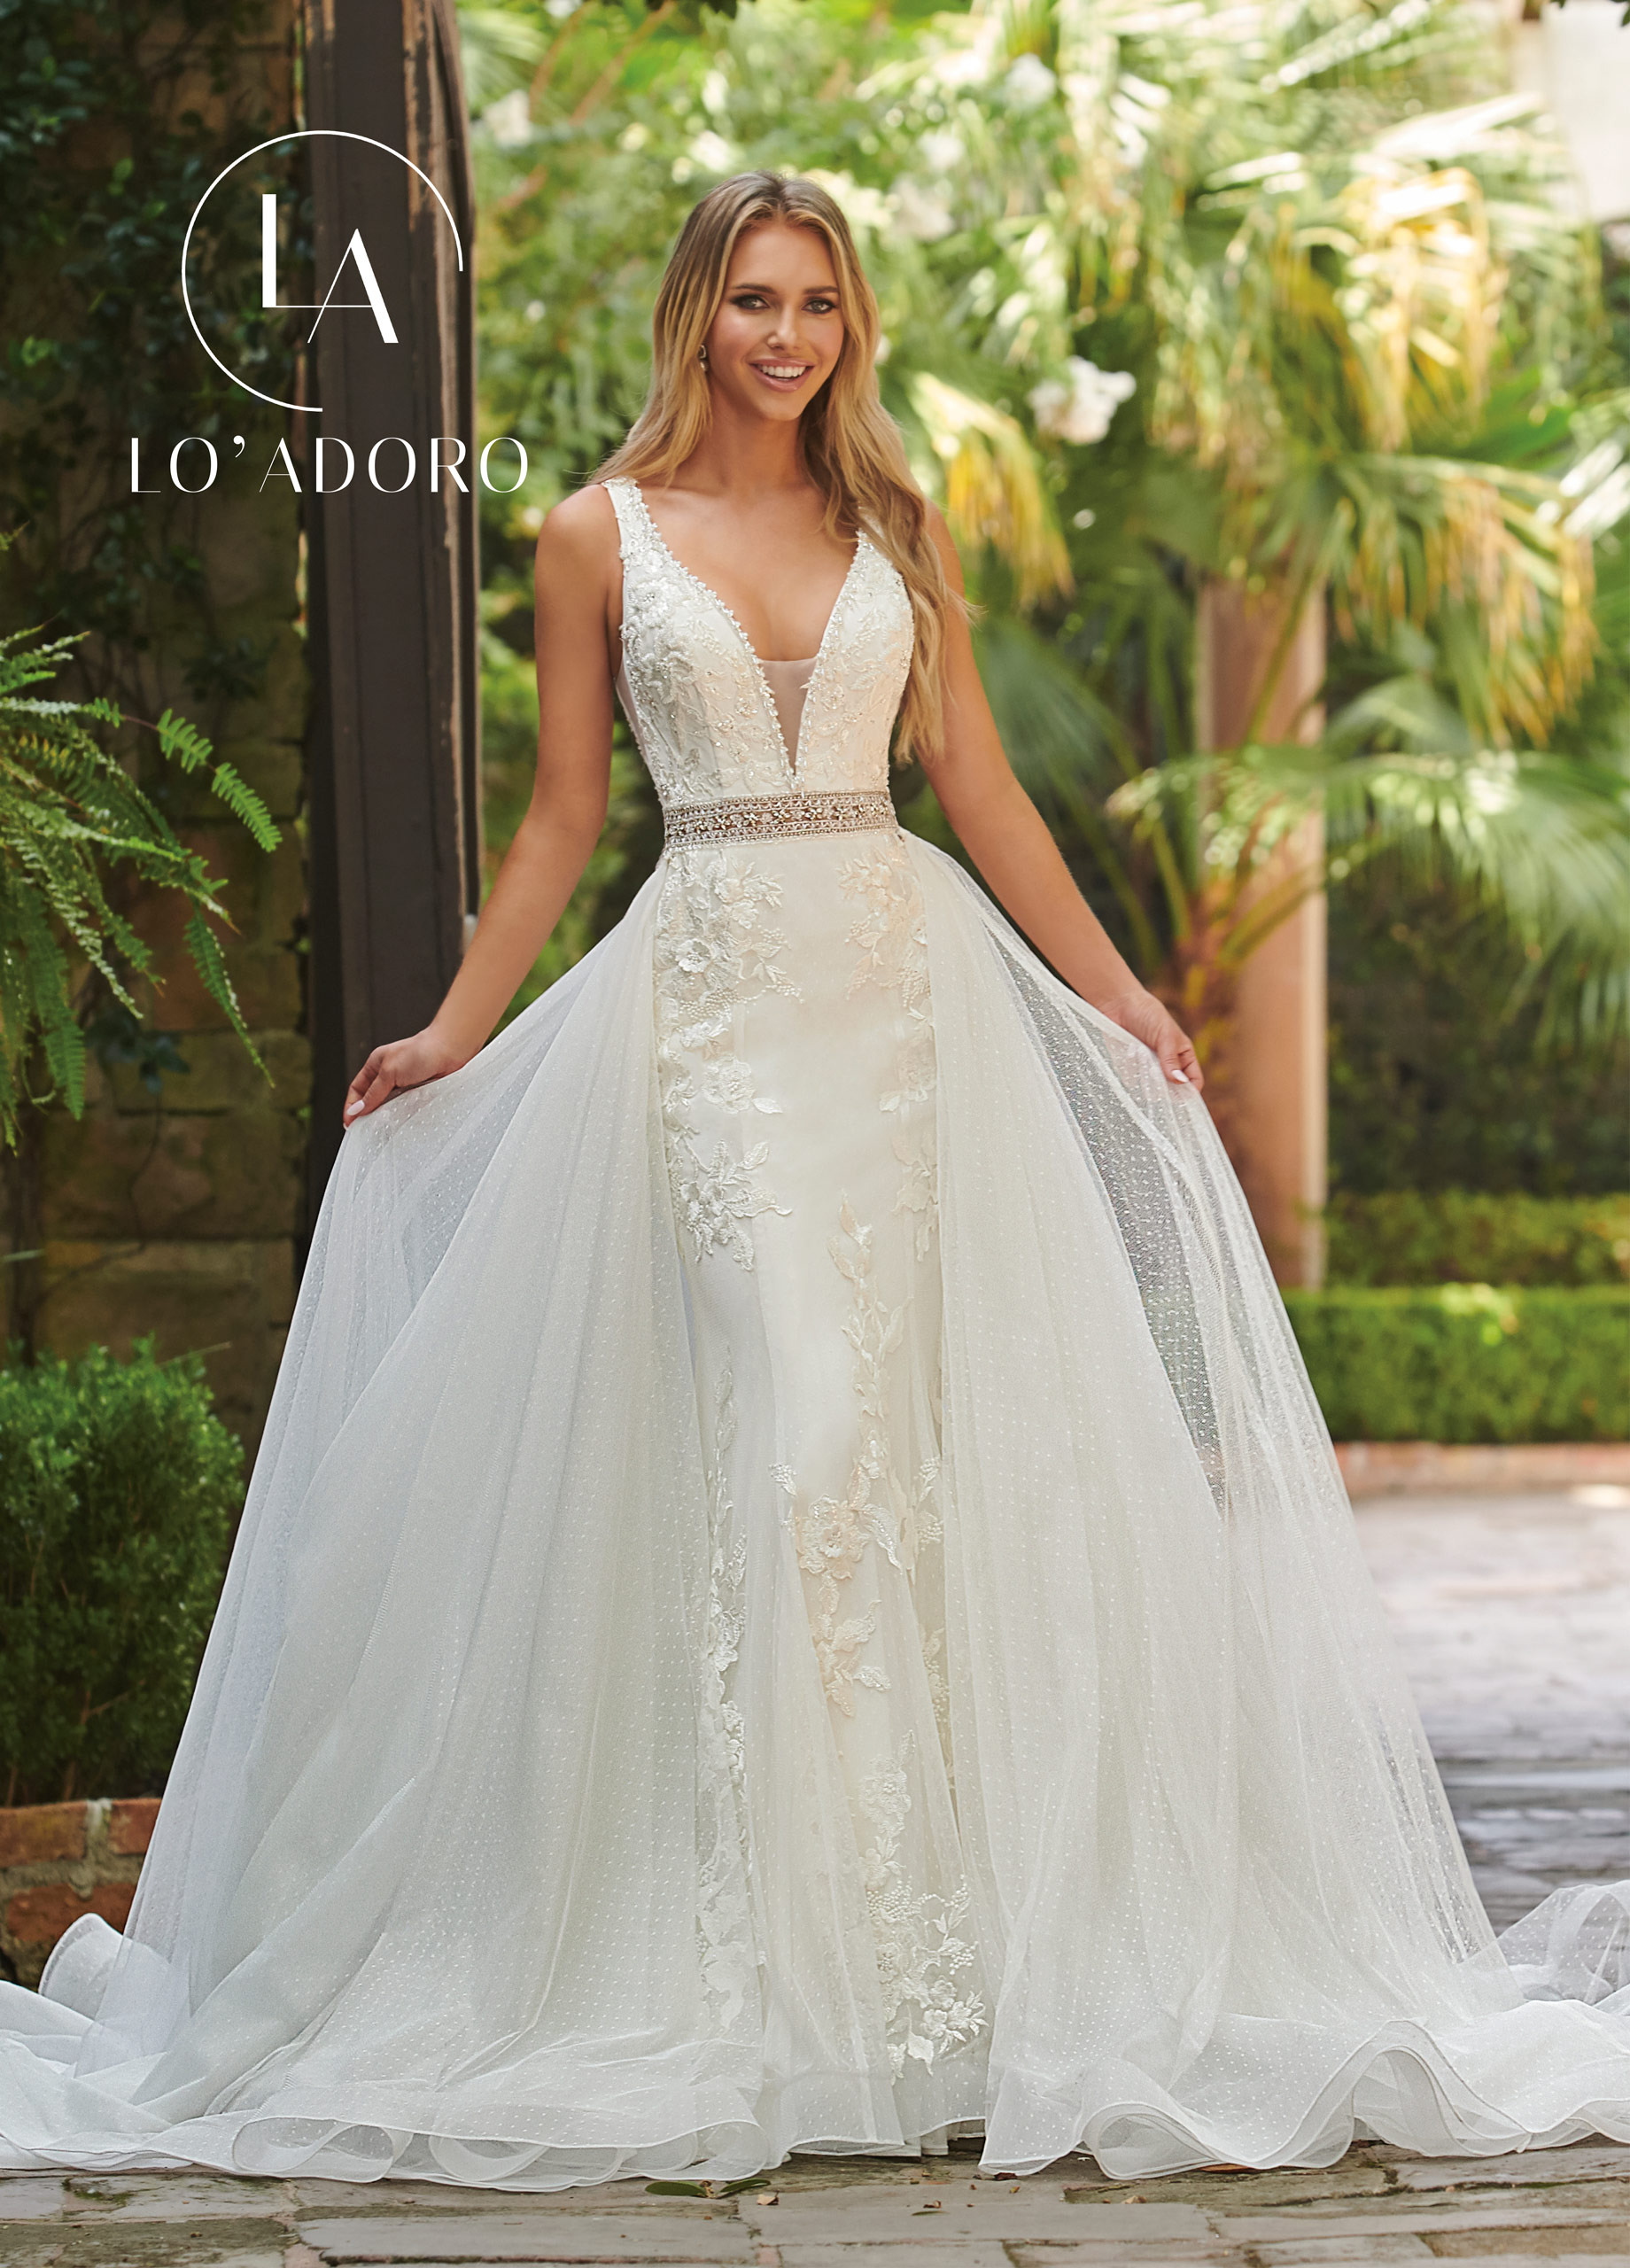 V-Neck Fit & Flare Lo' Adoro Bridal in Ivory Color